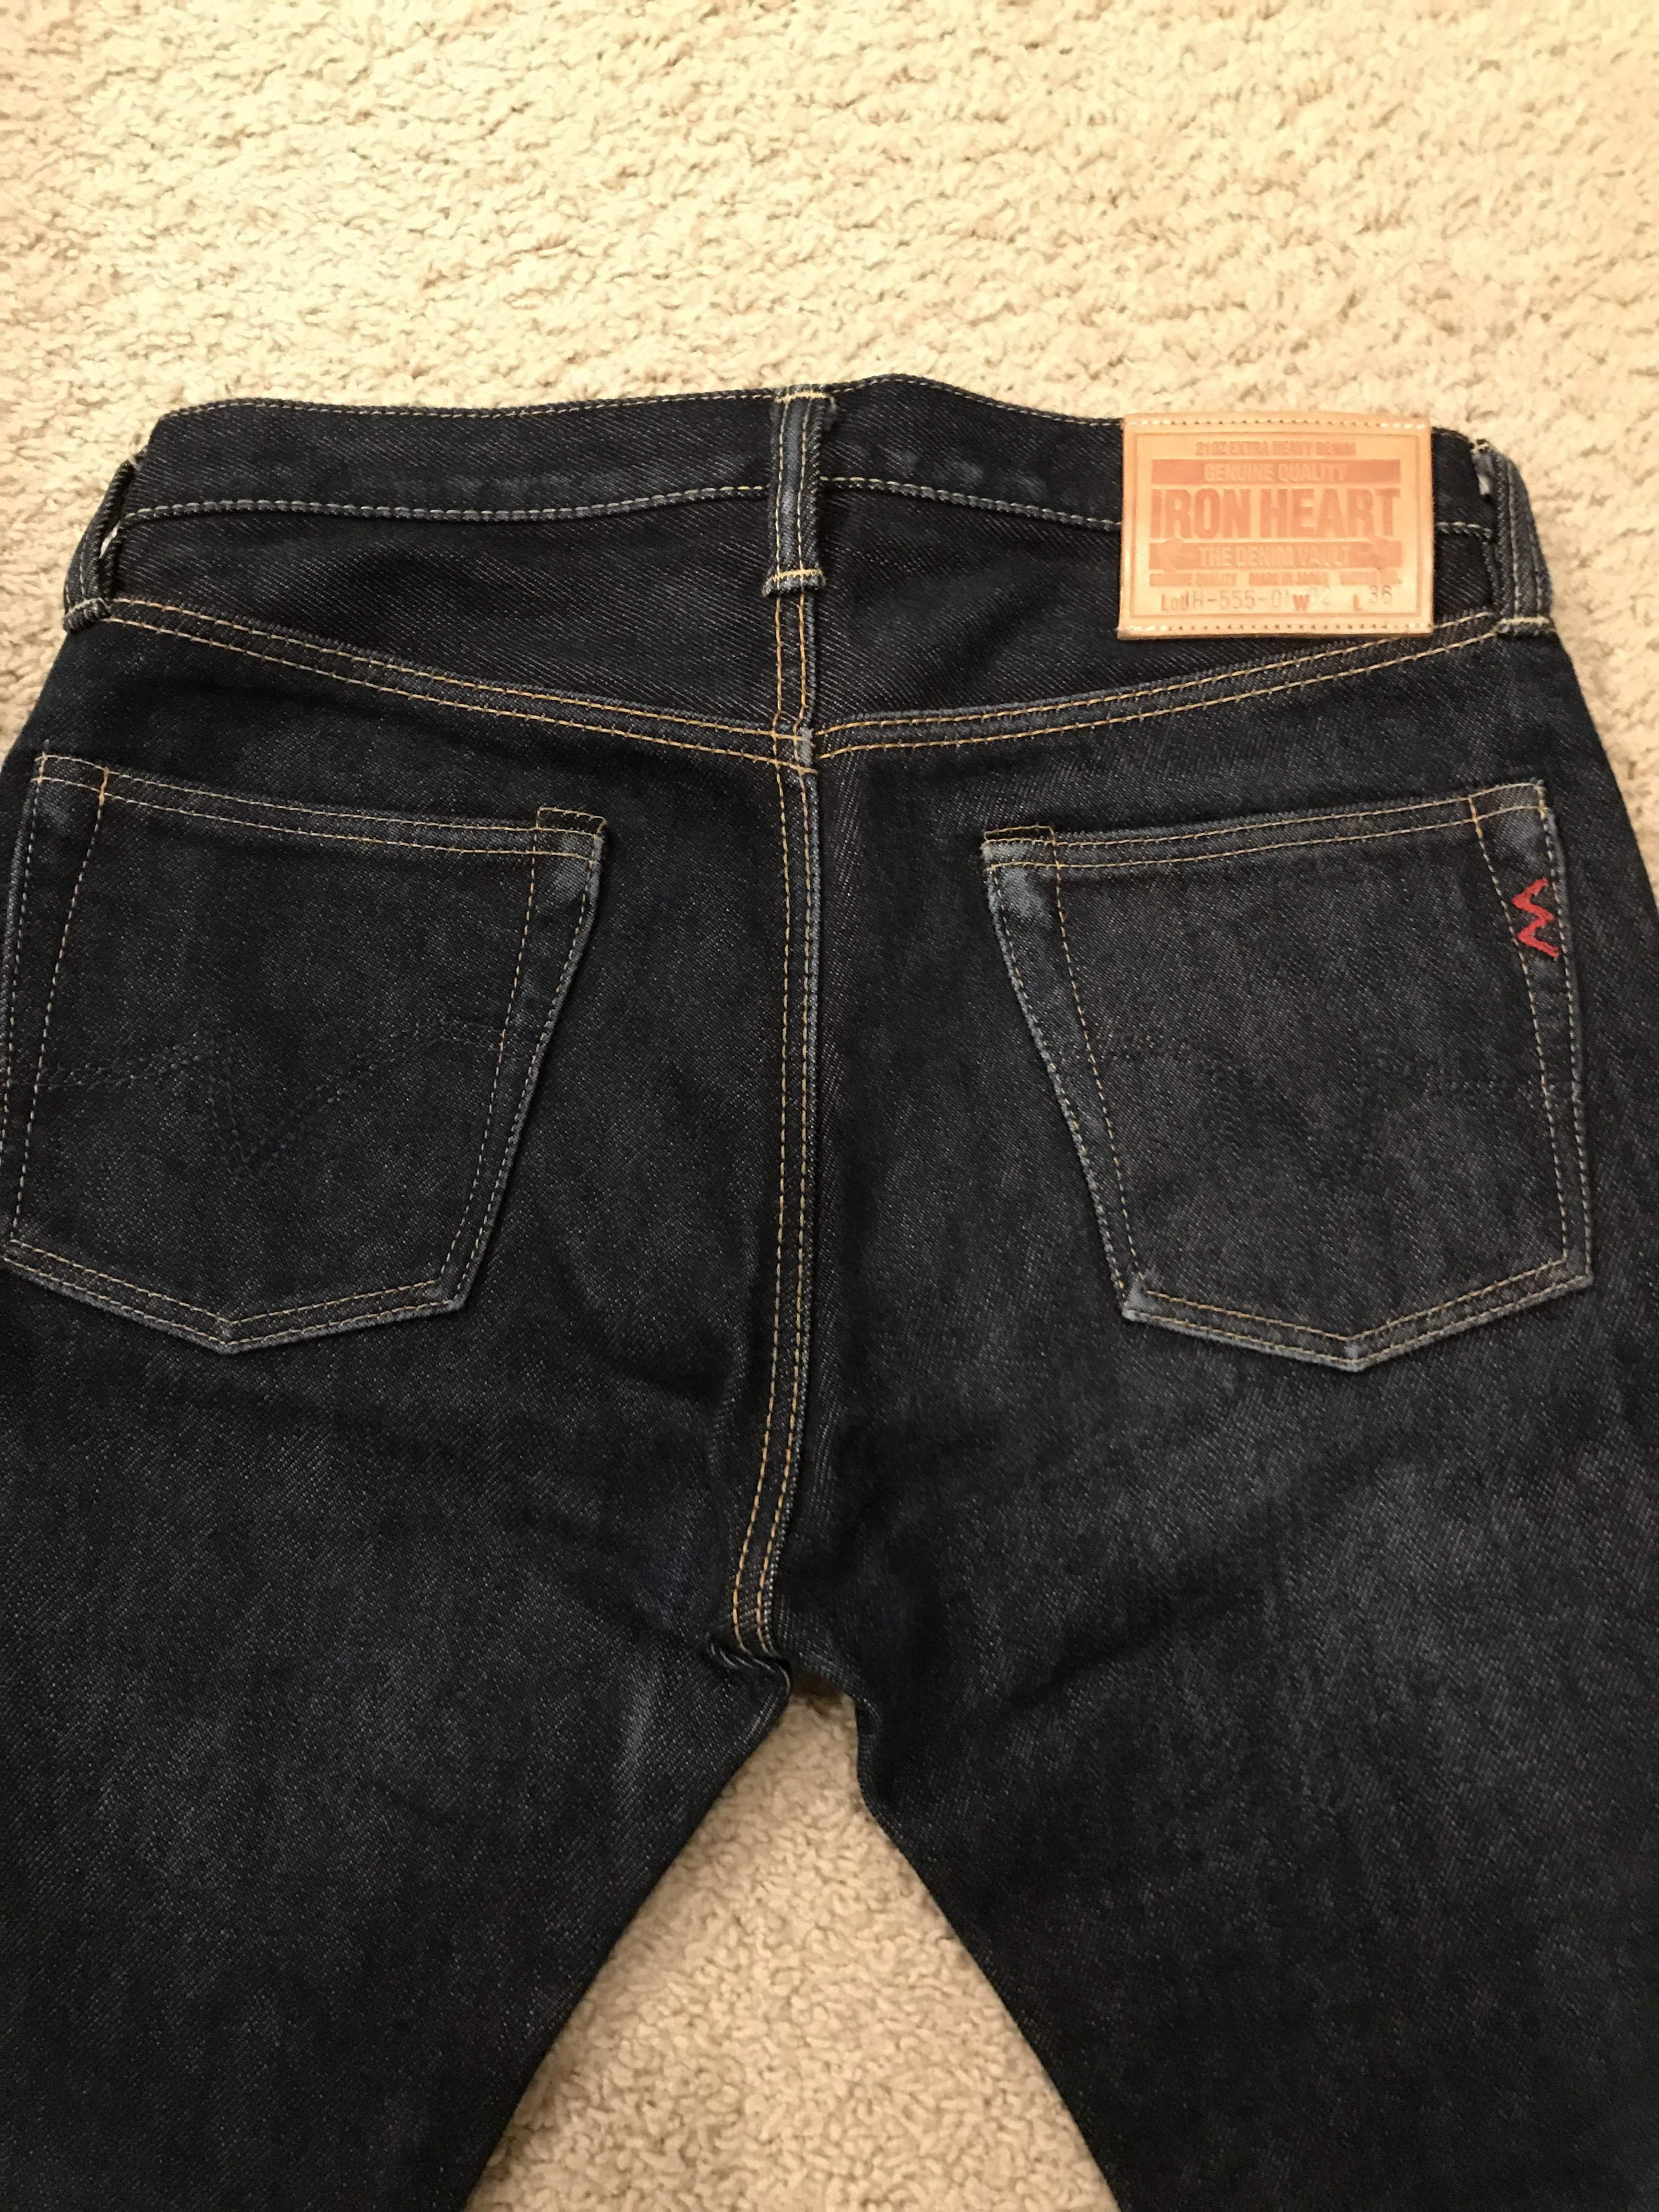 Iron Heart 555-01 32x36 (IH-555-01) 21 oz (3 month wear) unhemmed